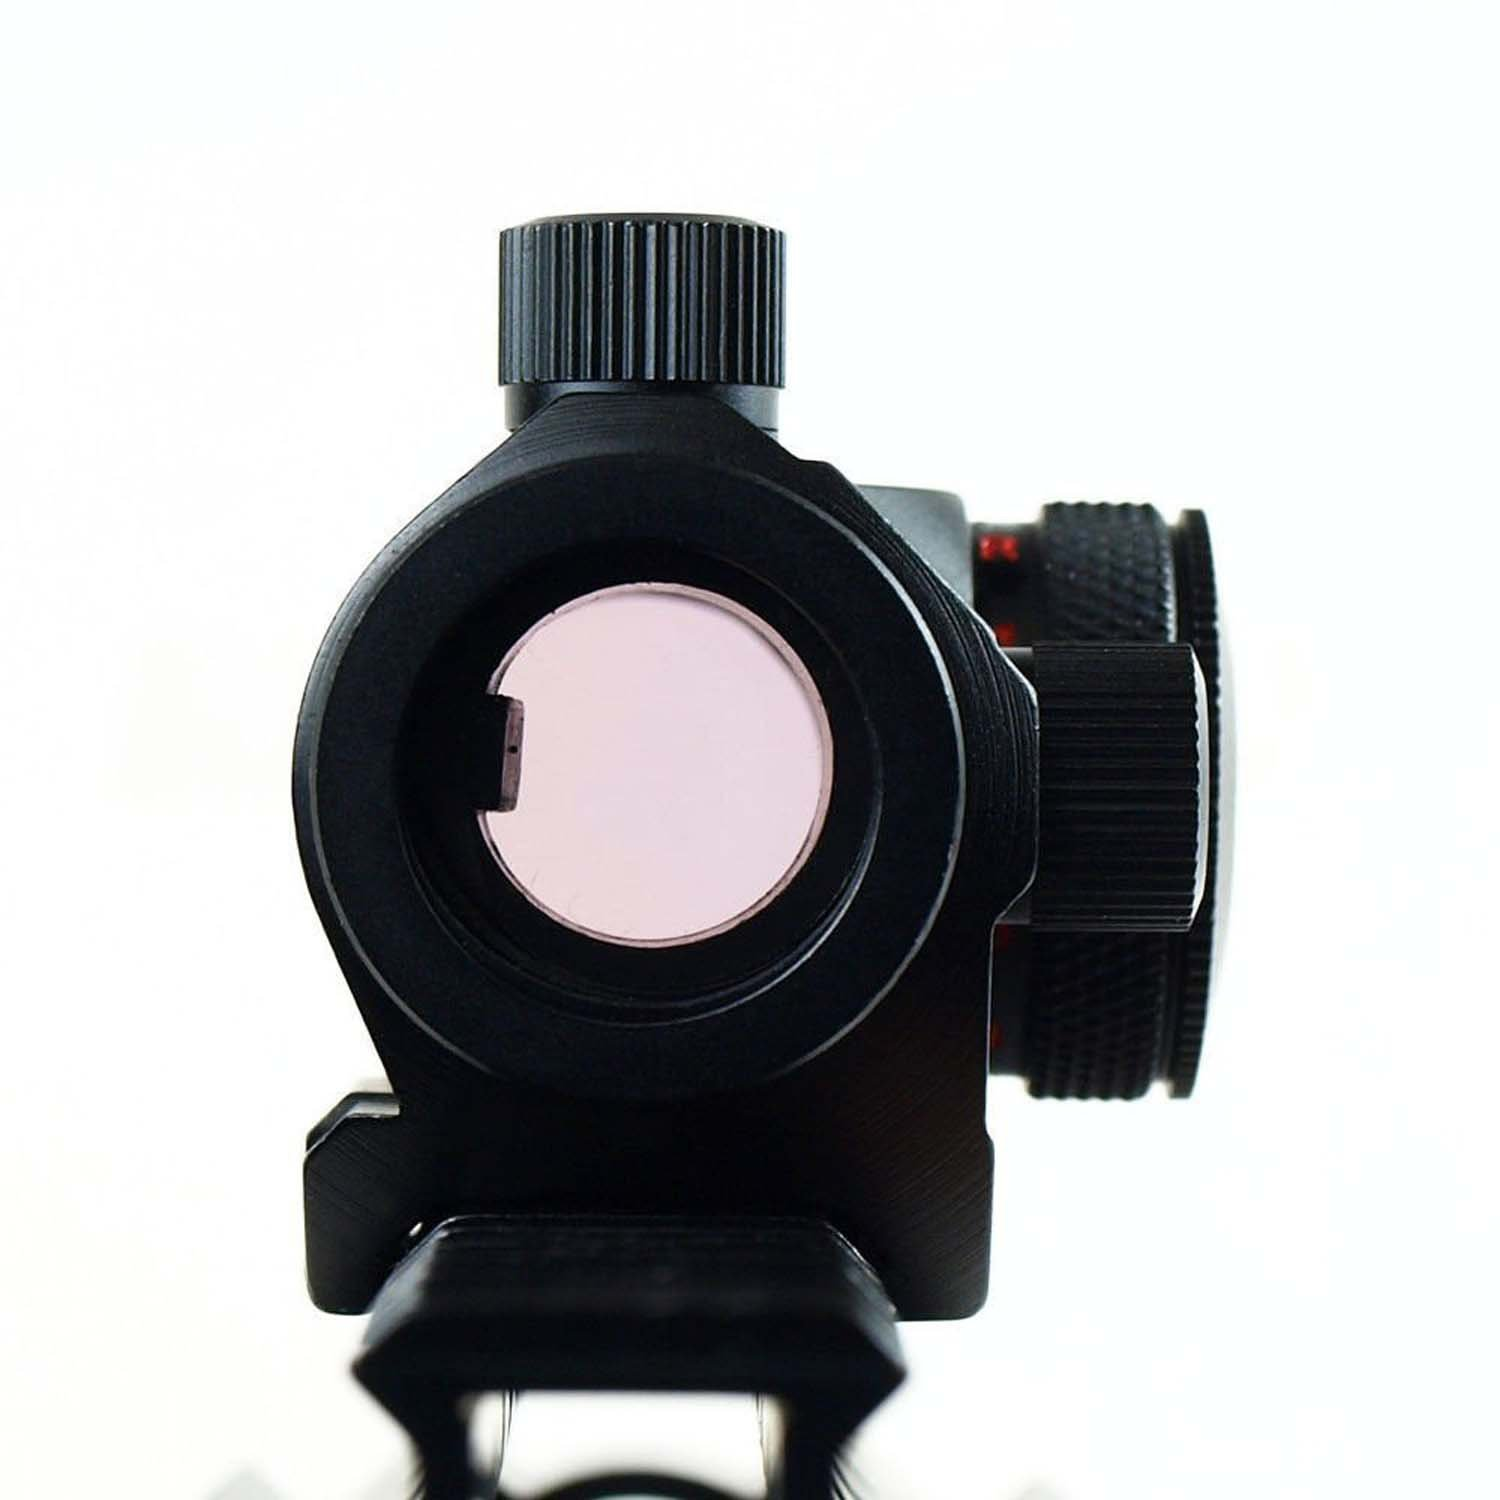 MAYMOC Airsoft 1x24 Micro T-1 Red//Green Dot Sight Scope 20MM